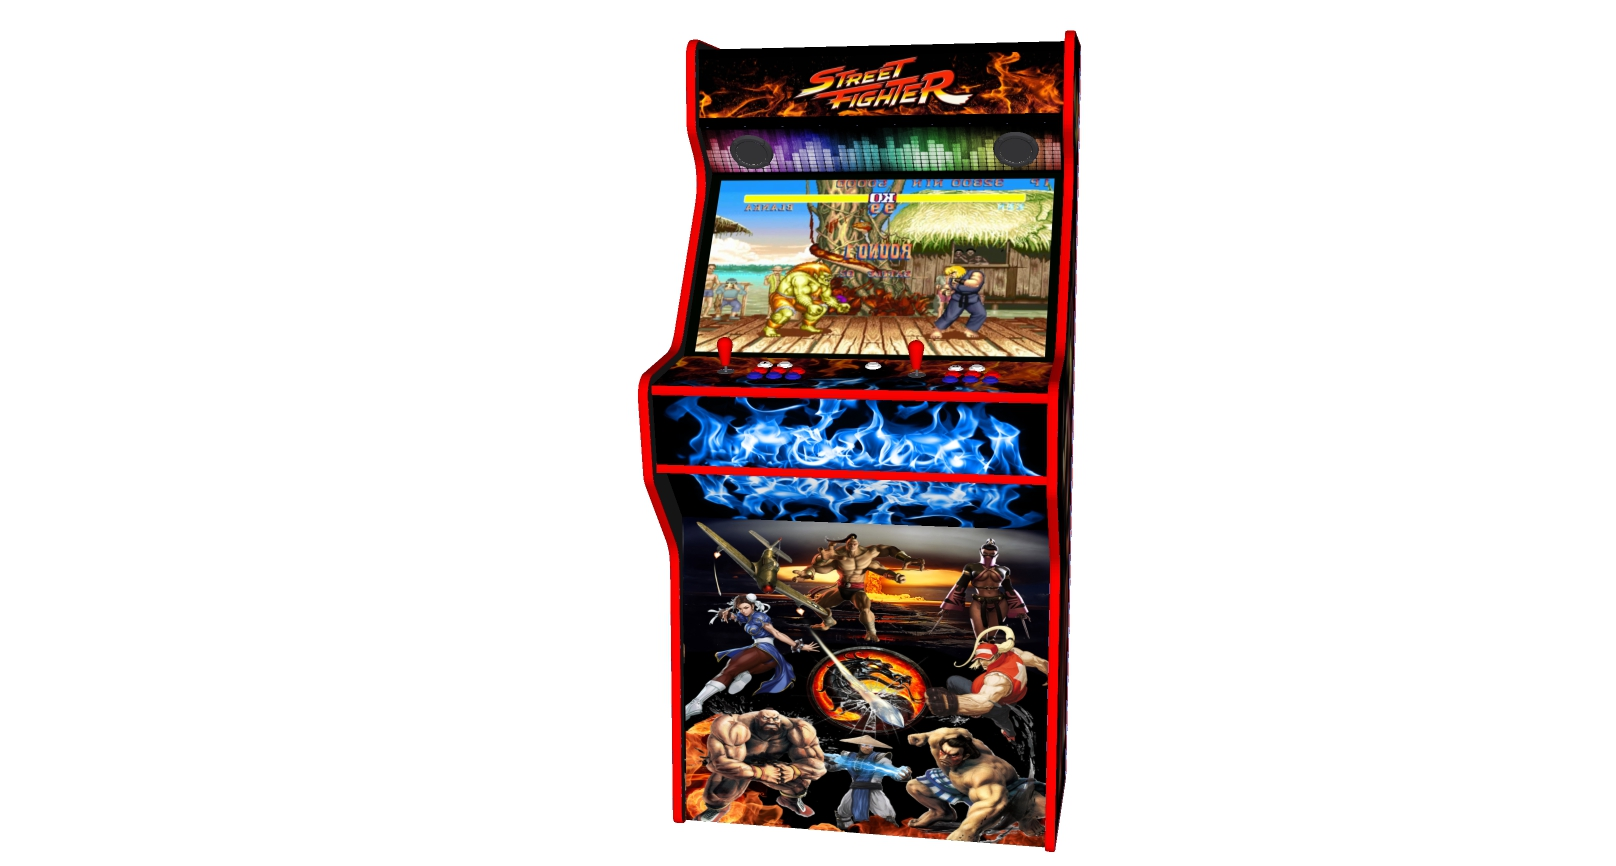 Street Fighter 32 Inch Upright Arcade Machine - American Style Joysticks - Red Tmold - middle